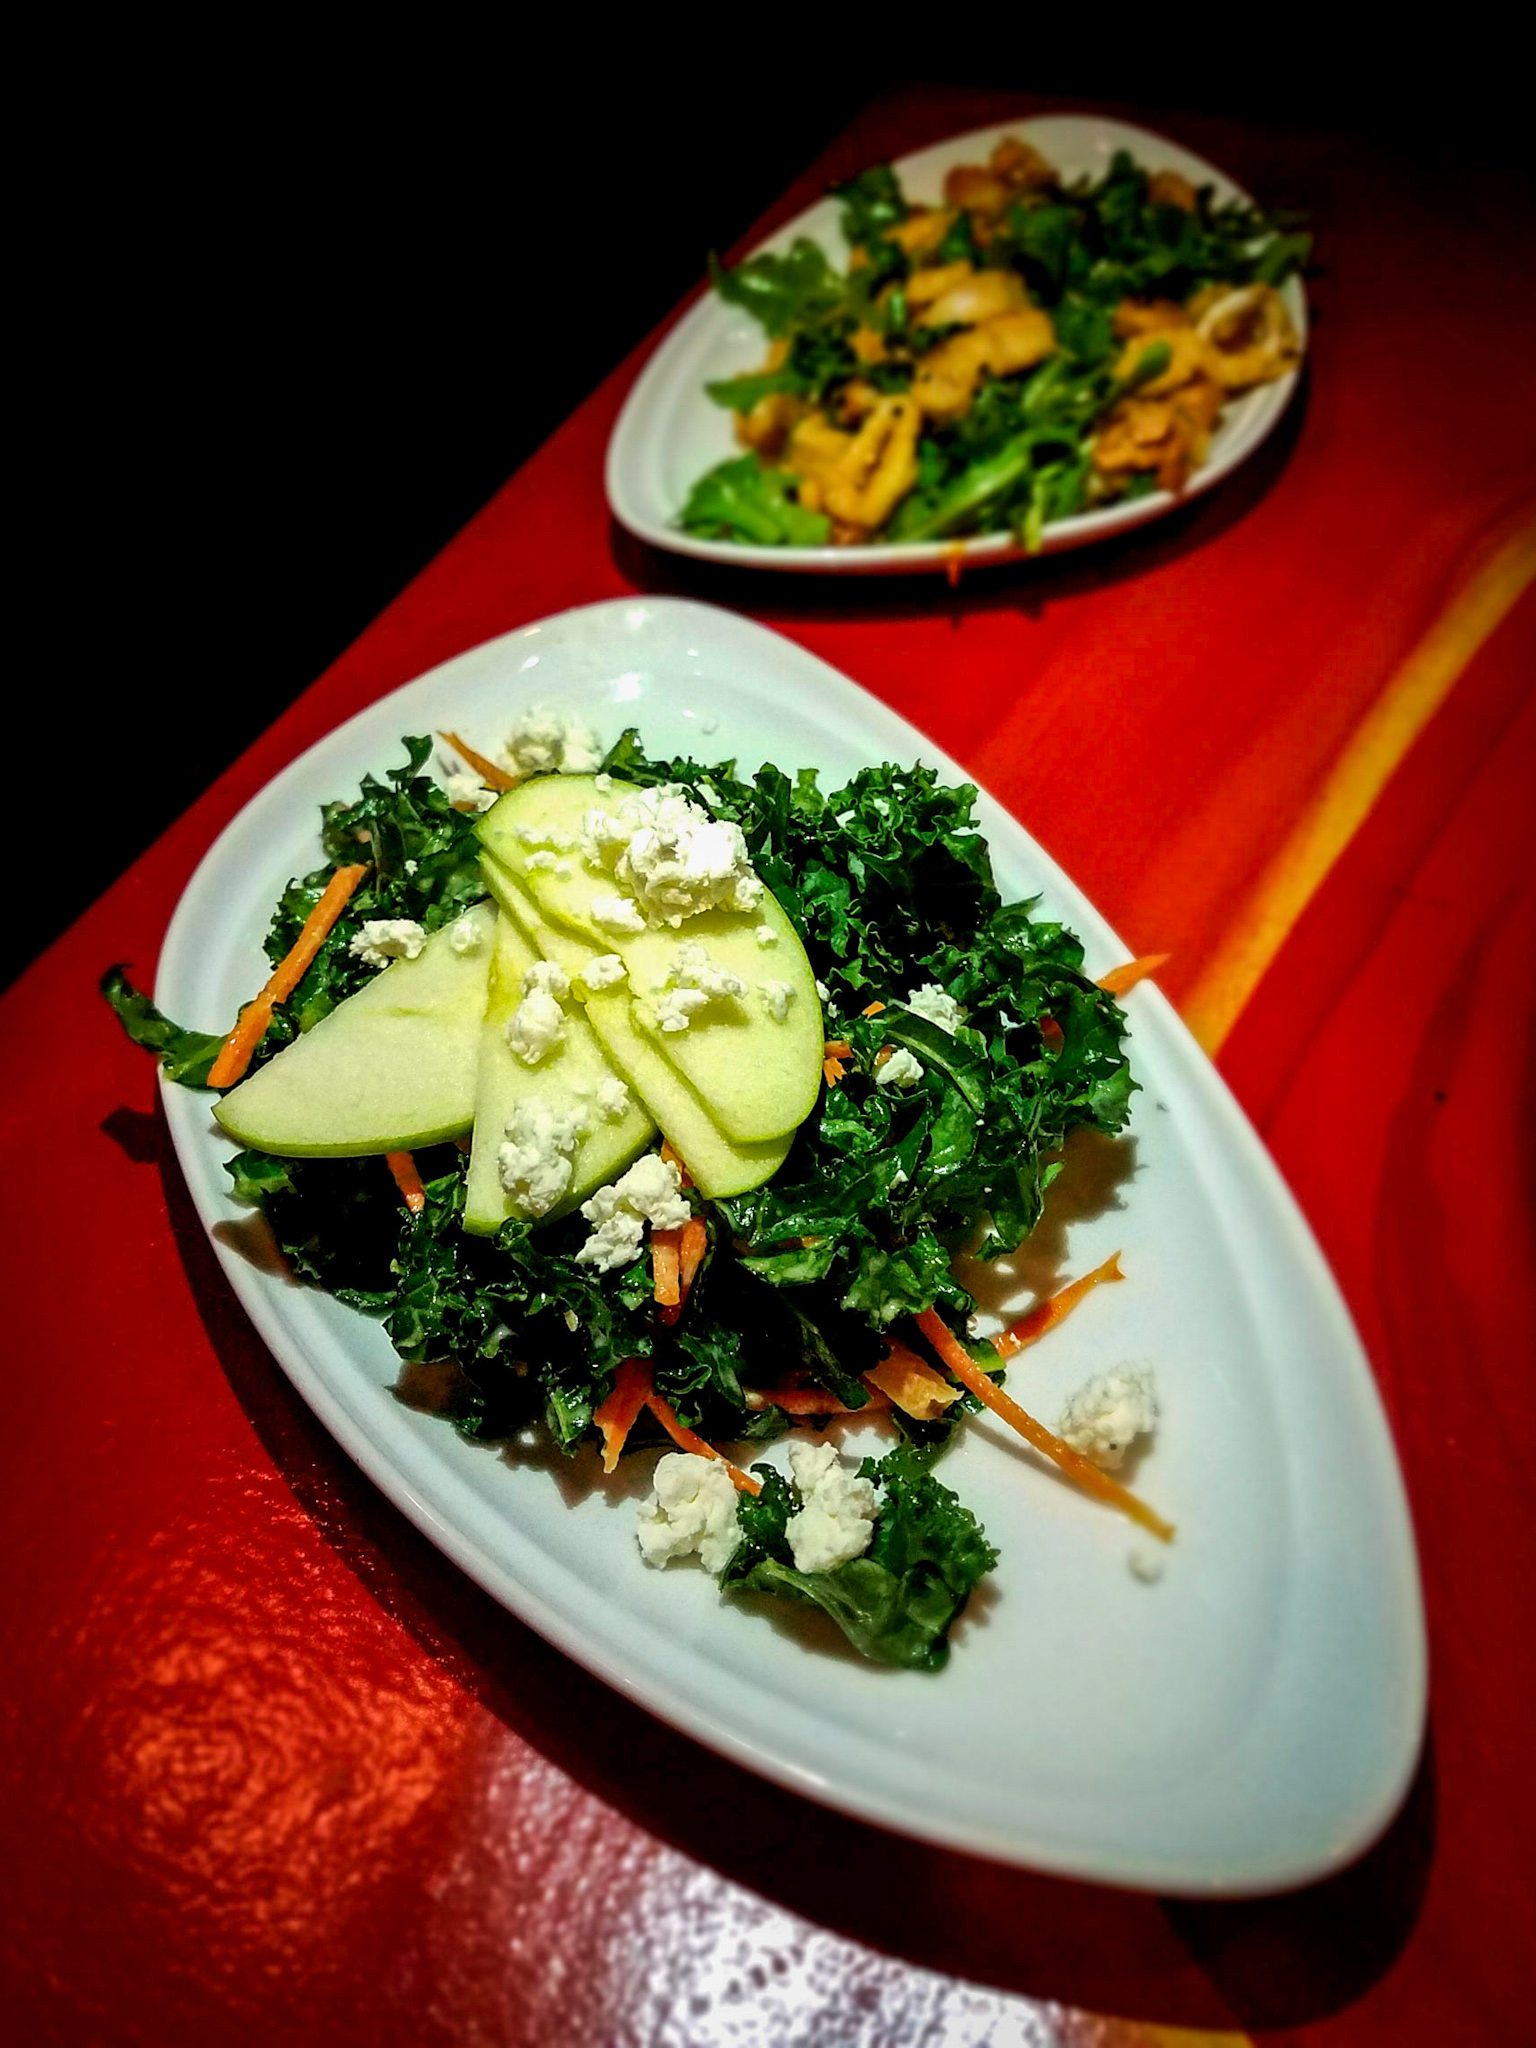 Kale Goat Cheese Salad